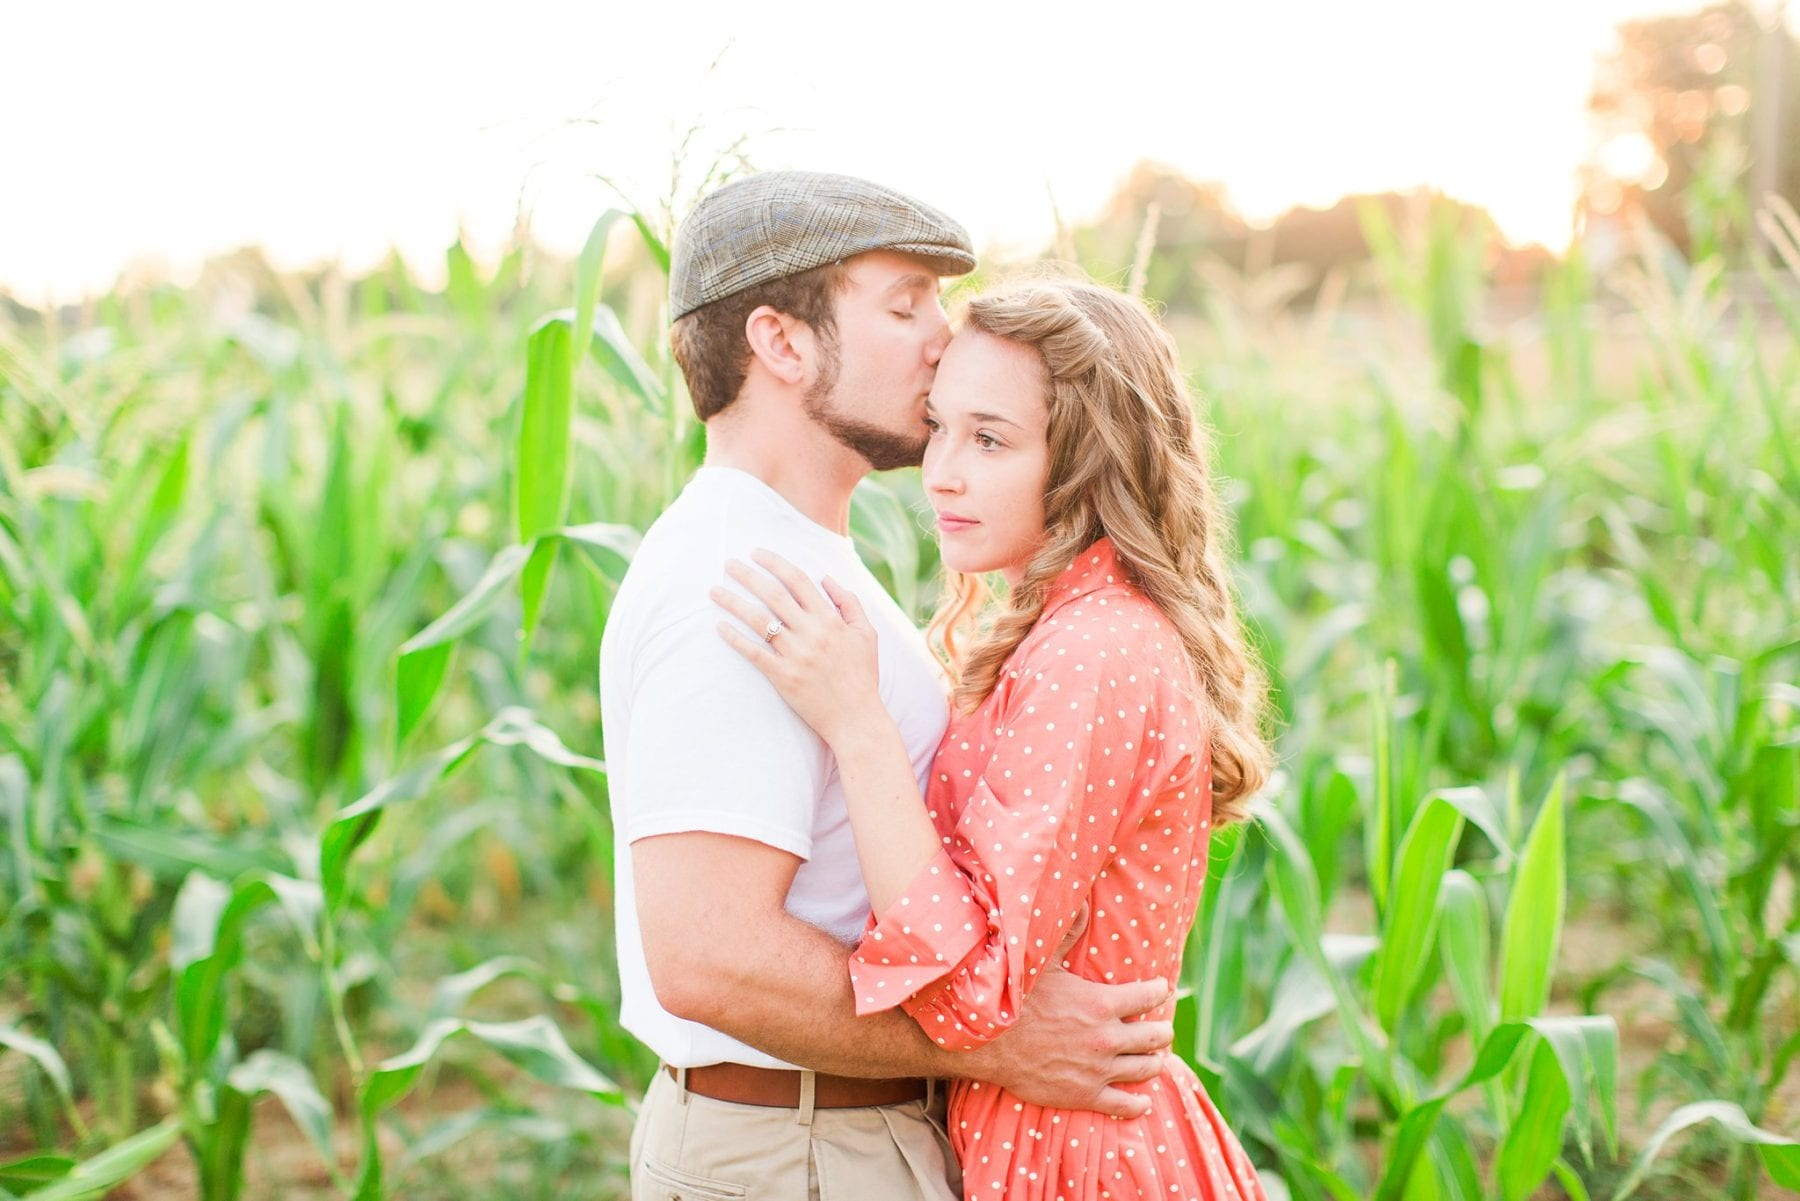 County Fair Engagement Photos Virginia Wedding Photographer Megan Kelsey Photography Samantha & Charles-21.JPG